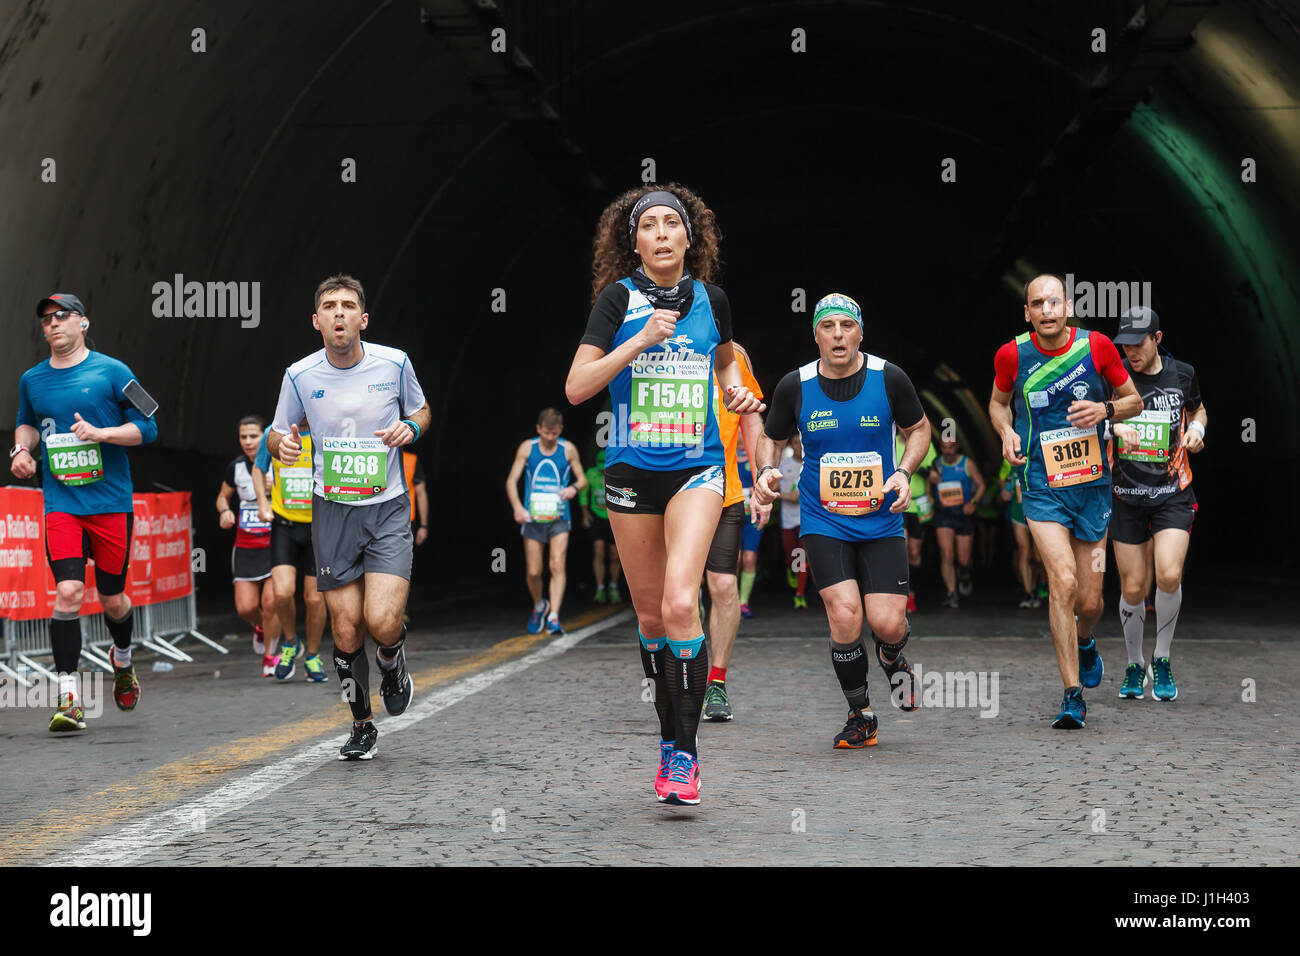 Rome, Italy - April 2nd, 2017: Athletes of the 23rd Rome Marathon to the passage of the tunnel Umberto I, a few - Stock Image